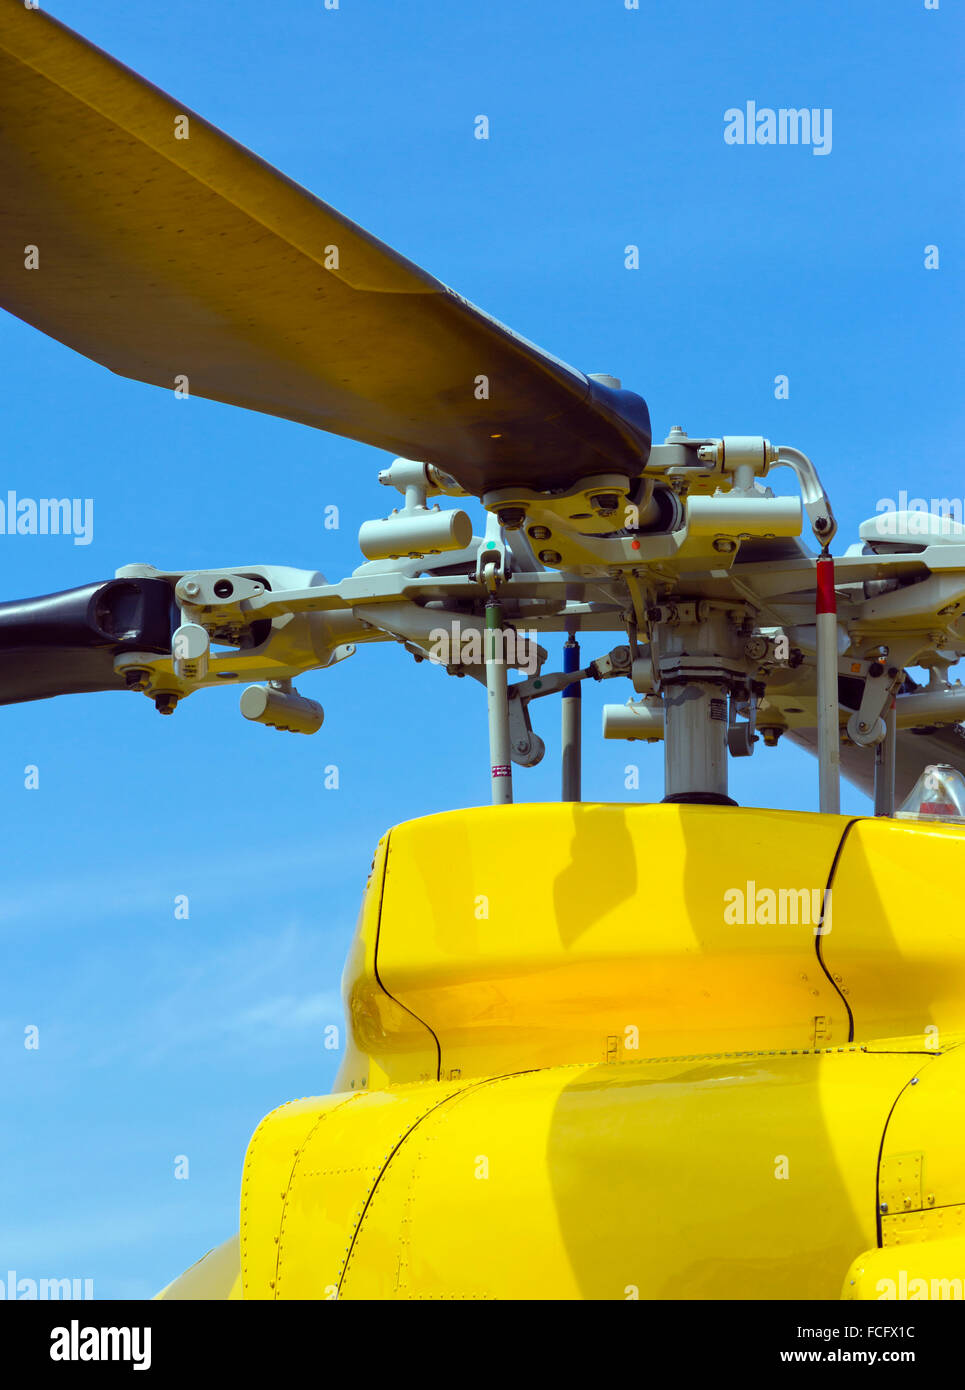 Close-up of a yellow helicopter - Stock Image